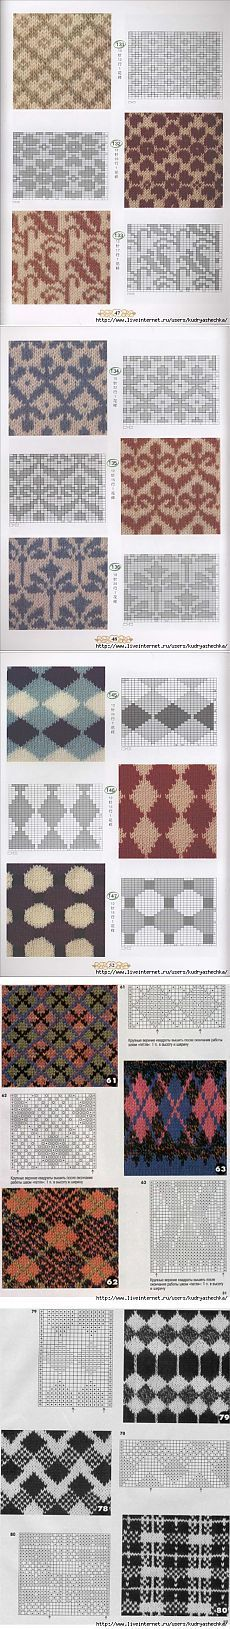 125 best Knitted Swatches images on Pinterest | Texture, Backpacks ...